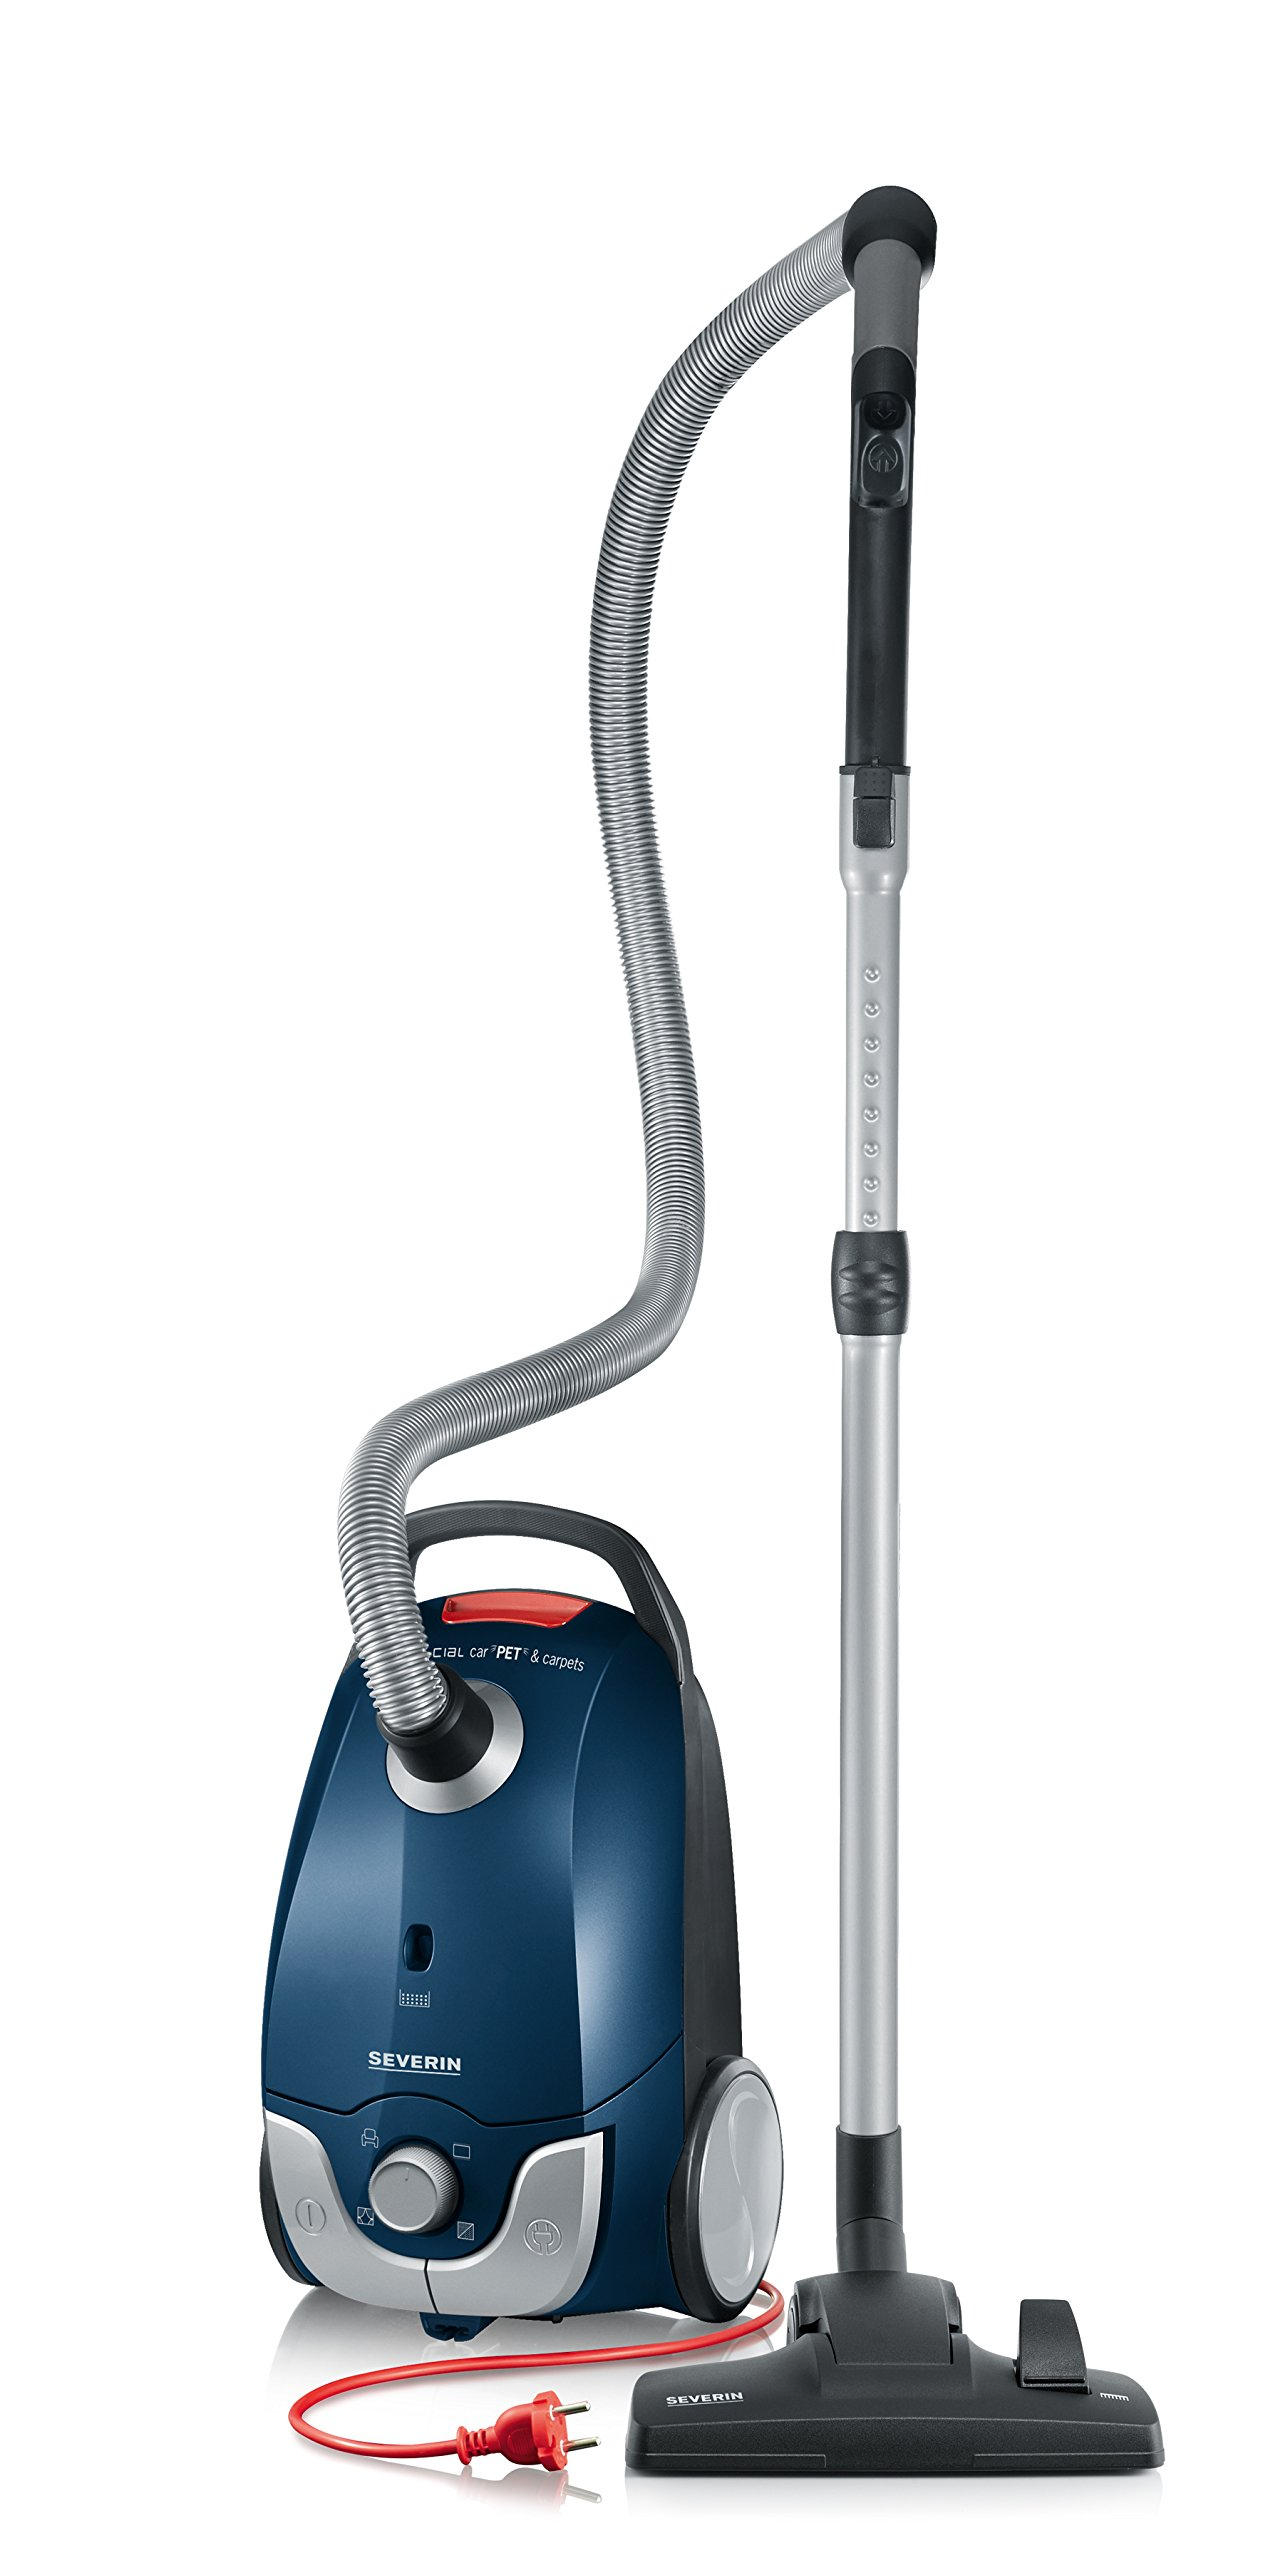 Severin Special Corded Vacuum Cleaner, Ocean Blue by Severin